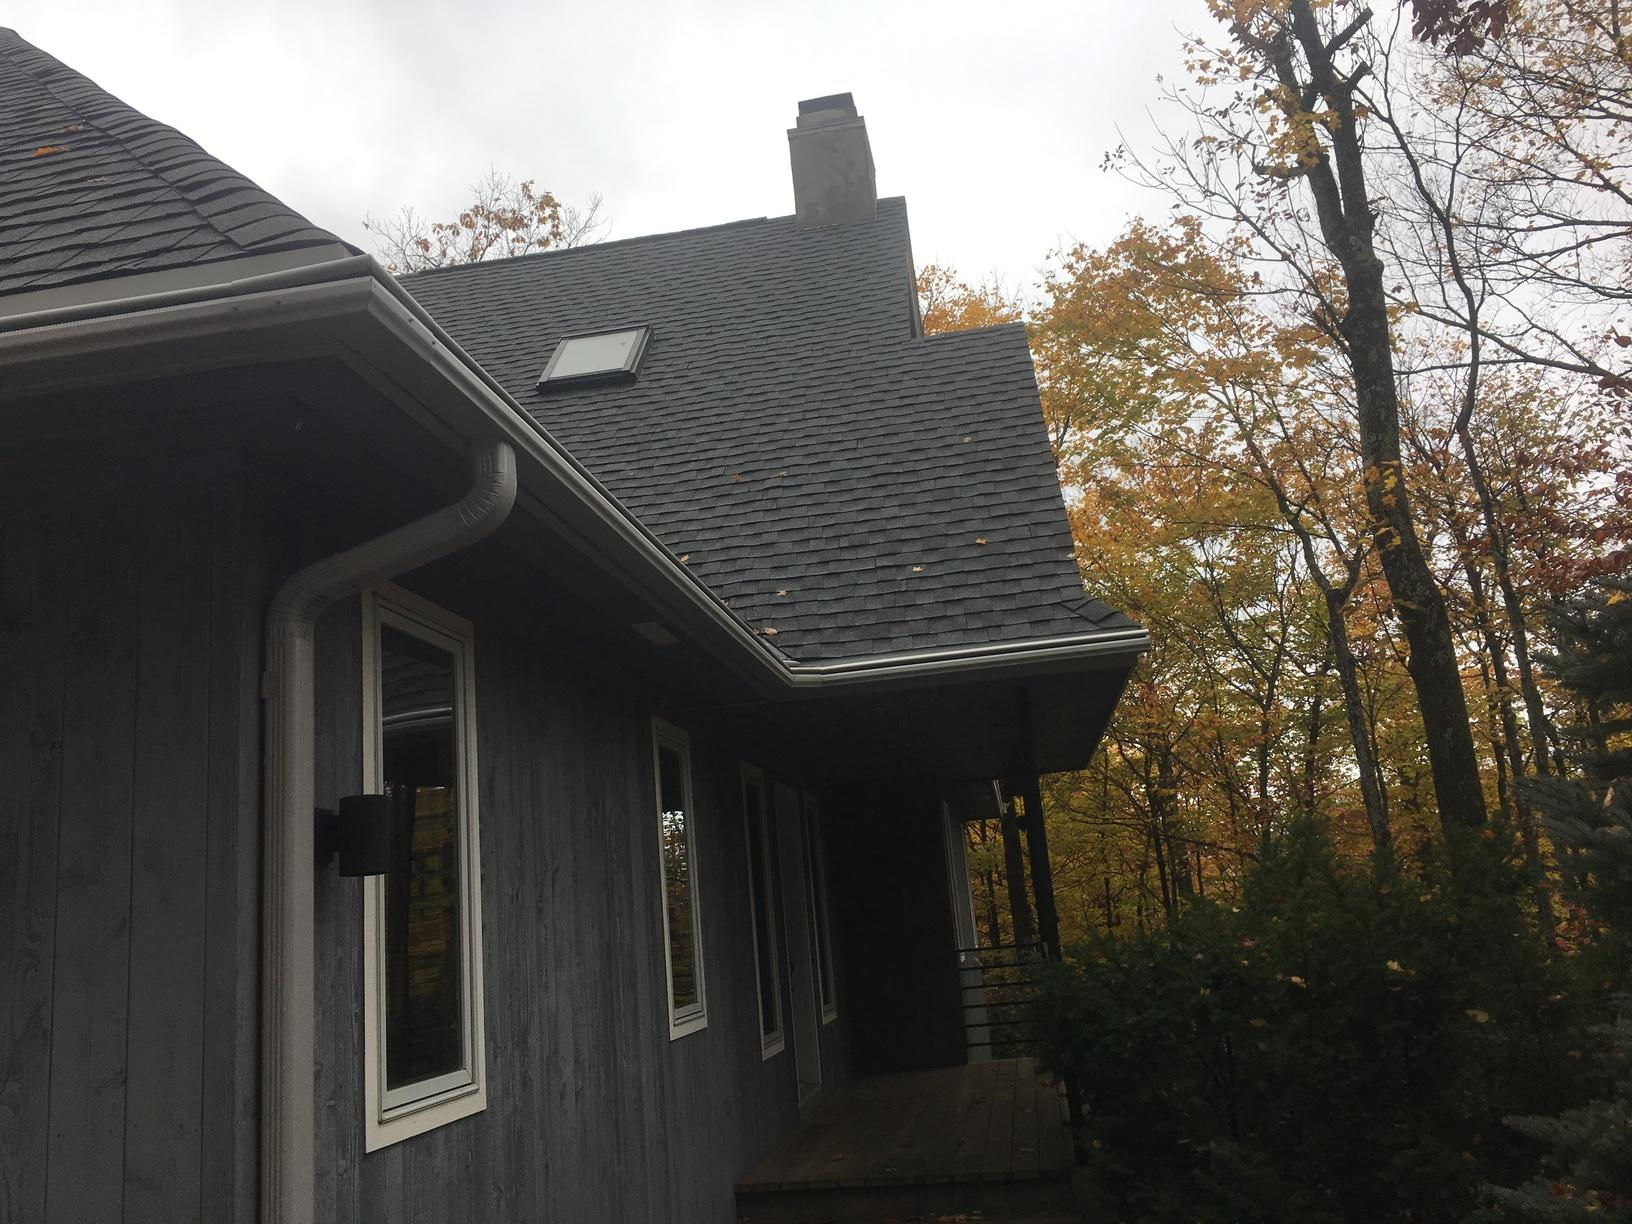 GAF Timerline Roof and LeafGuard Gutters installed in Sister Bay, WI - After Photo